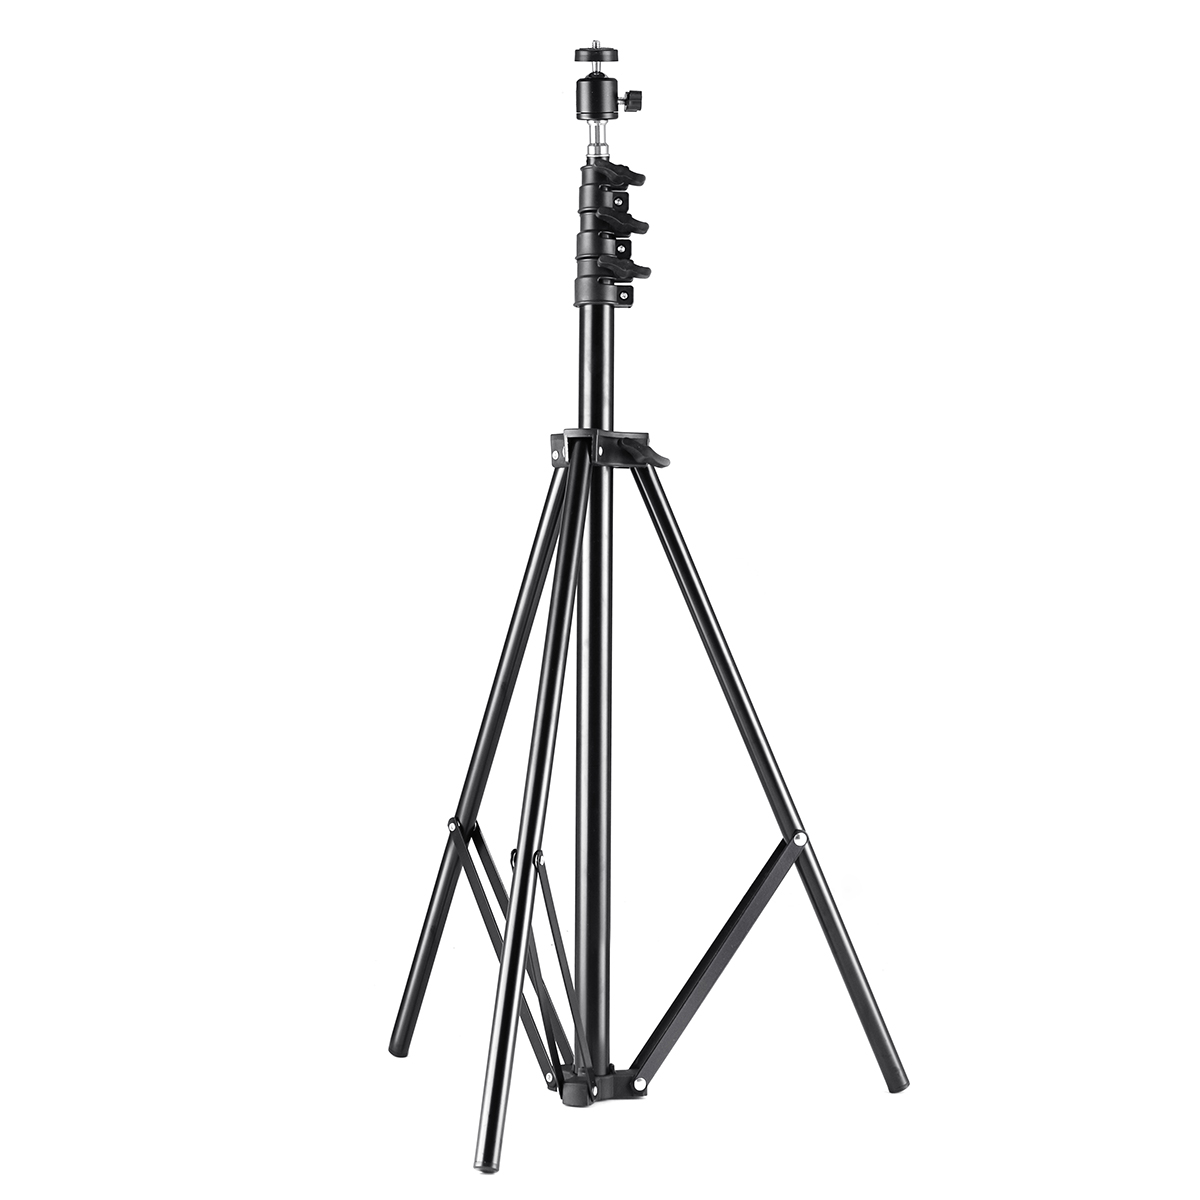 A Pair of 2.6m 8.5FT Light Lamp Umbrella Stand Tripod For